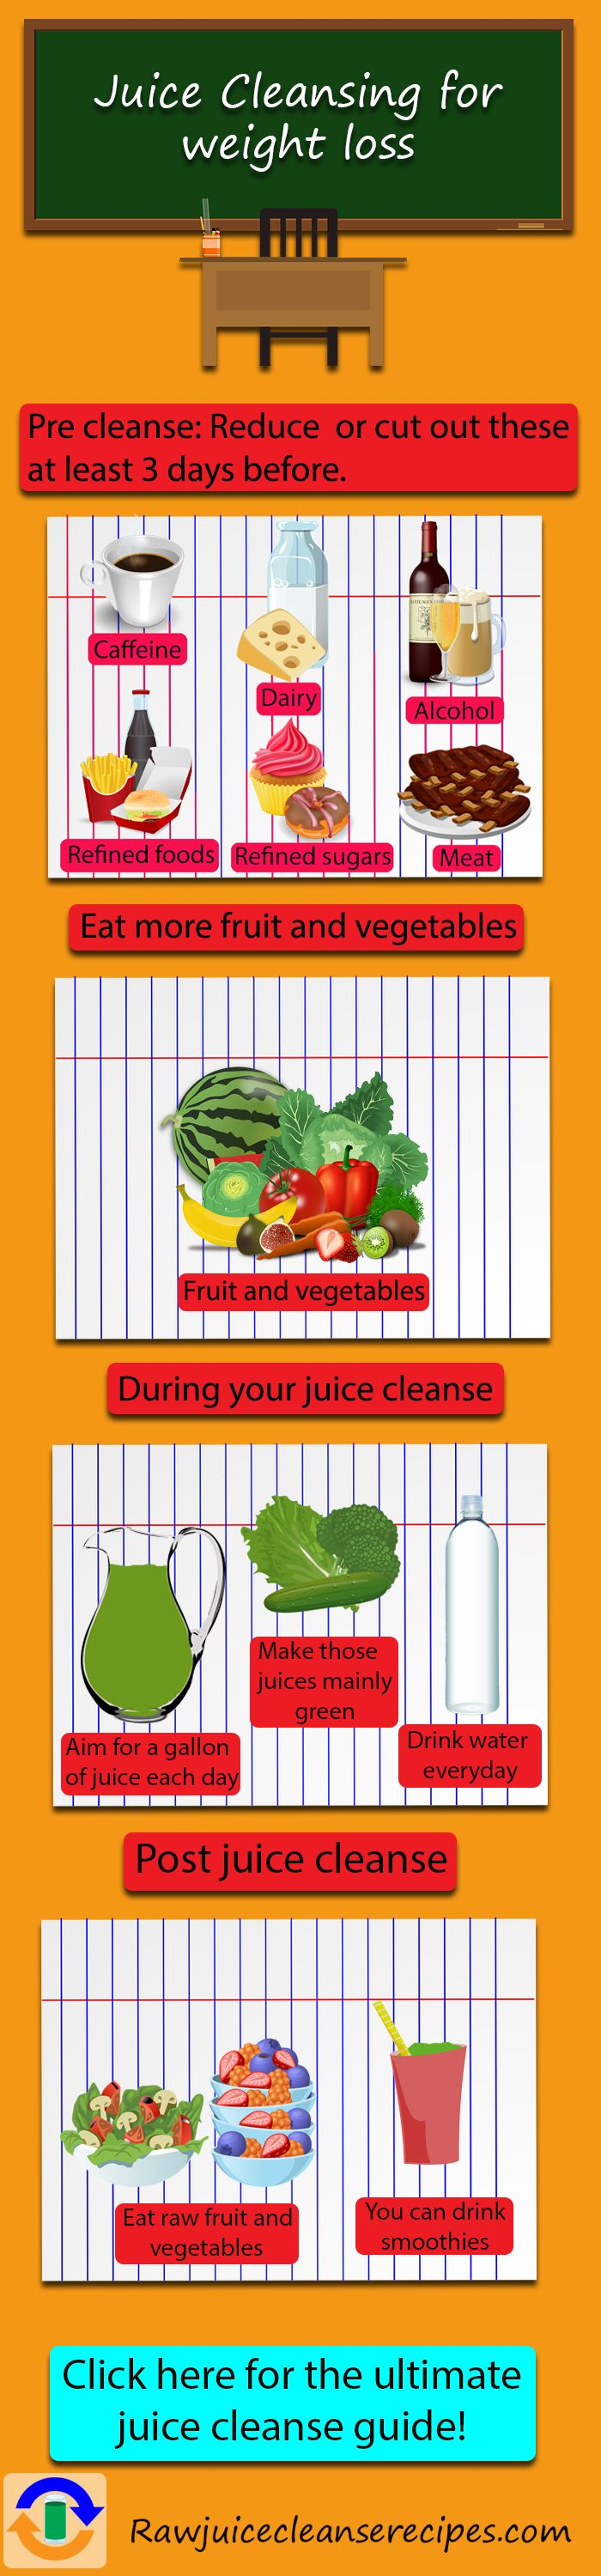 Juice Cleansing for weight loss is an extremely effective, healthy, and quick way to lose lots of weight. These tips briefly sum up what foods and beverages to cut out and add 3 days before your juice cleanse, what to do during your juice cleanse, and what to add back into your diet right after your juice cleanse. Click to check out a comprehensive juice cleanse guide that gives you everything you need to know to do a juice cleanse for weight loss the RIGHT way. Just love this!